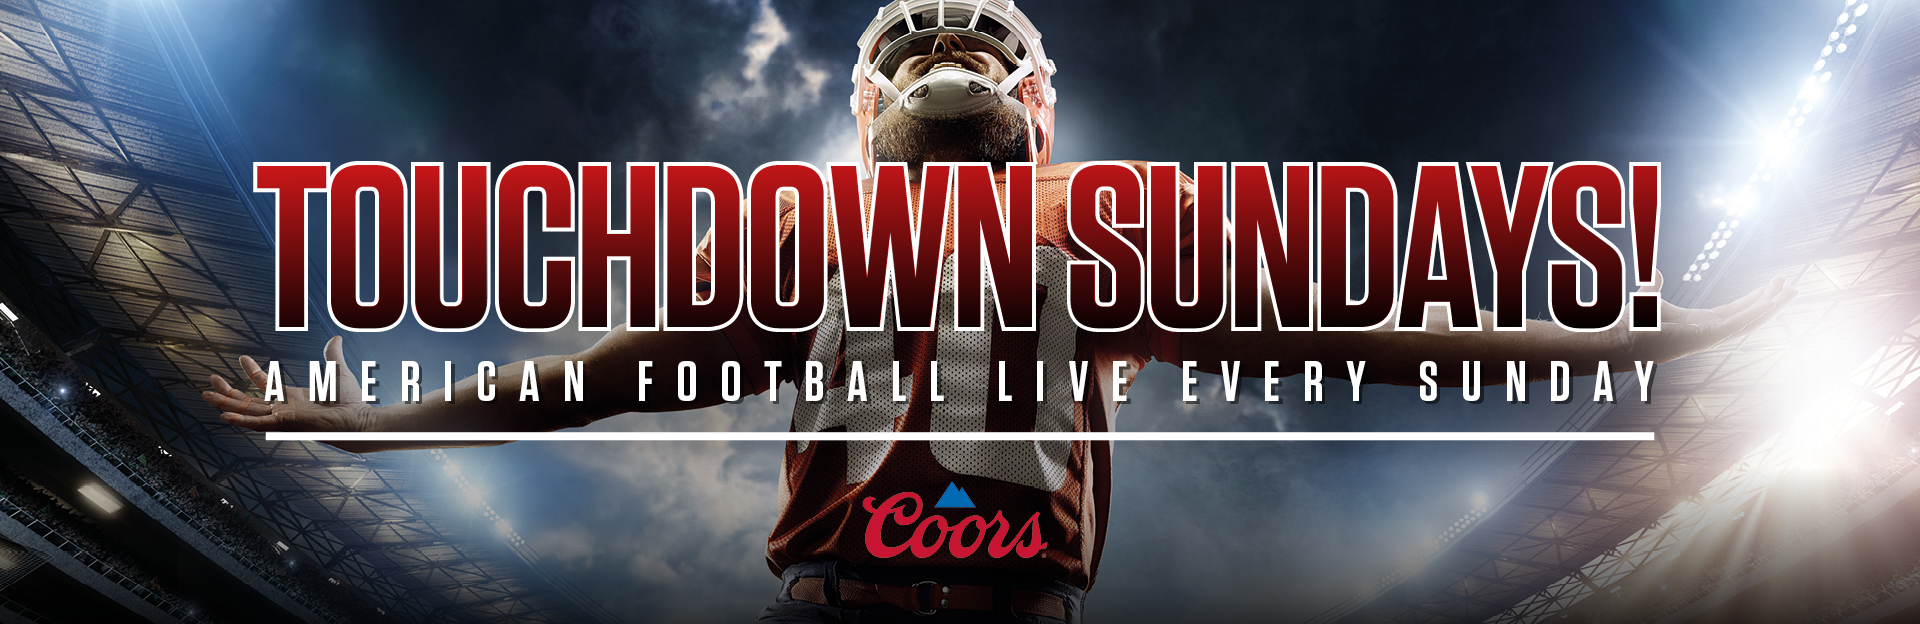 Watch NFL at The Junction